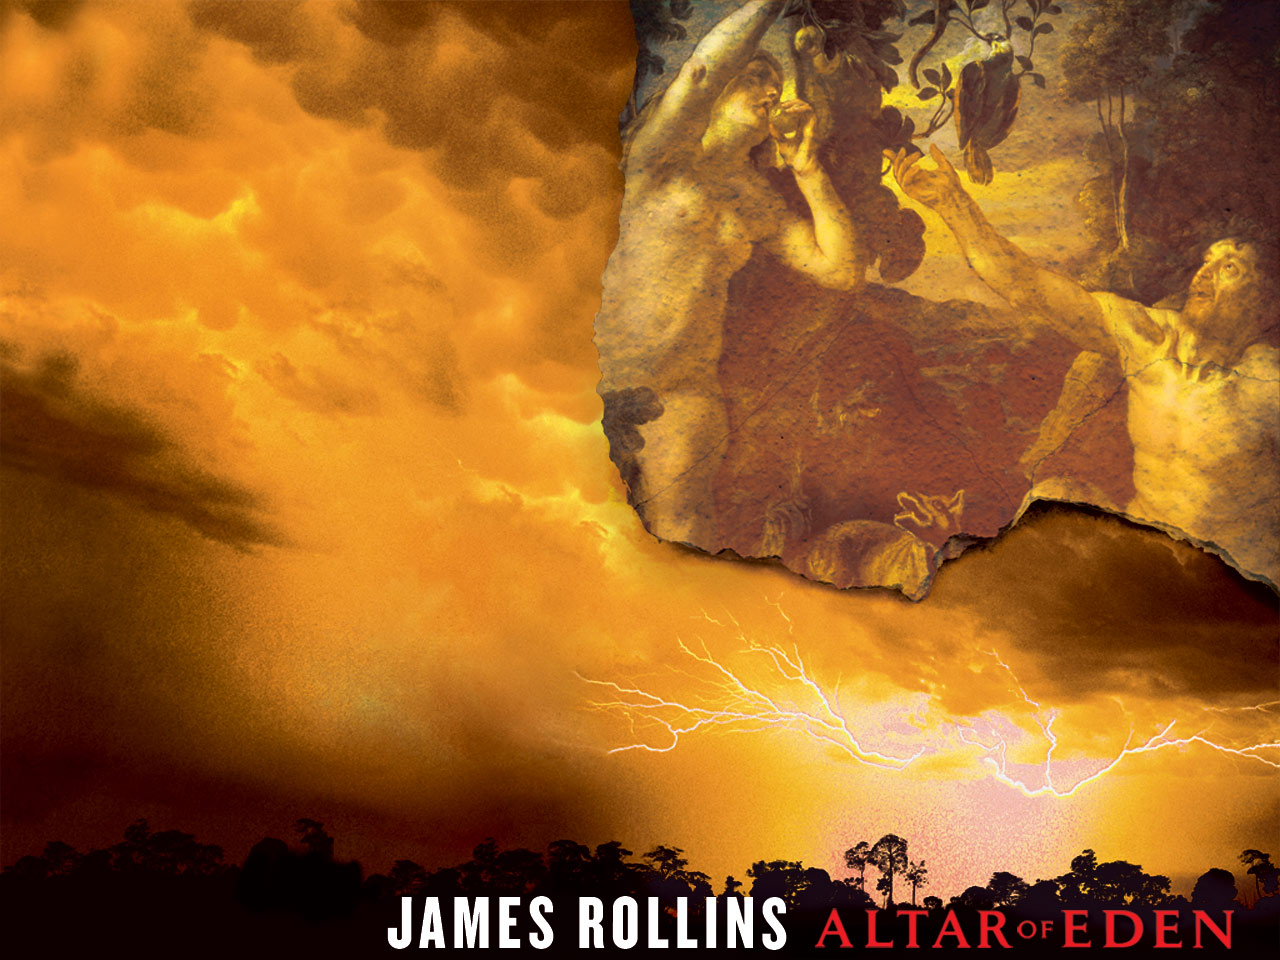 deep fathom james rollins pdf